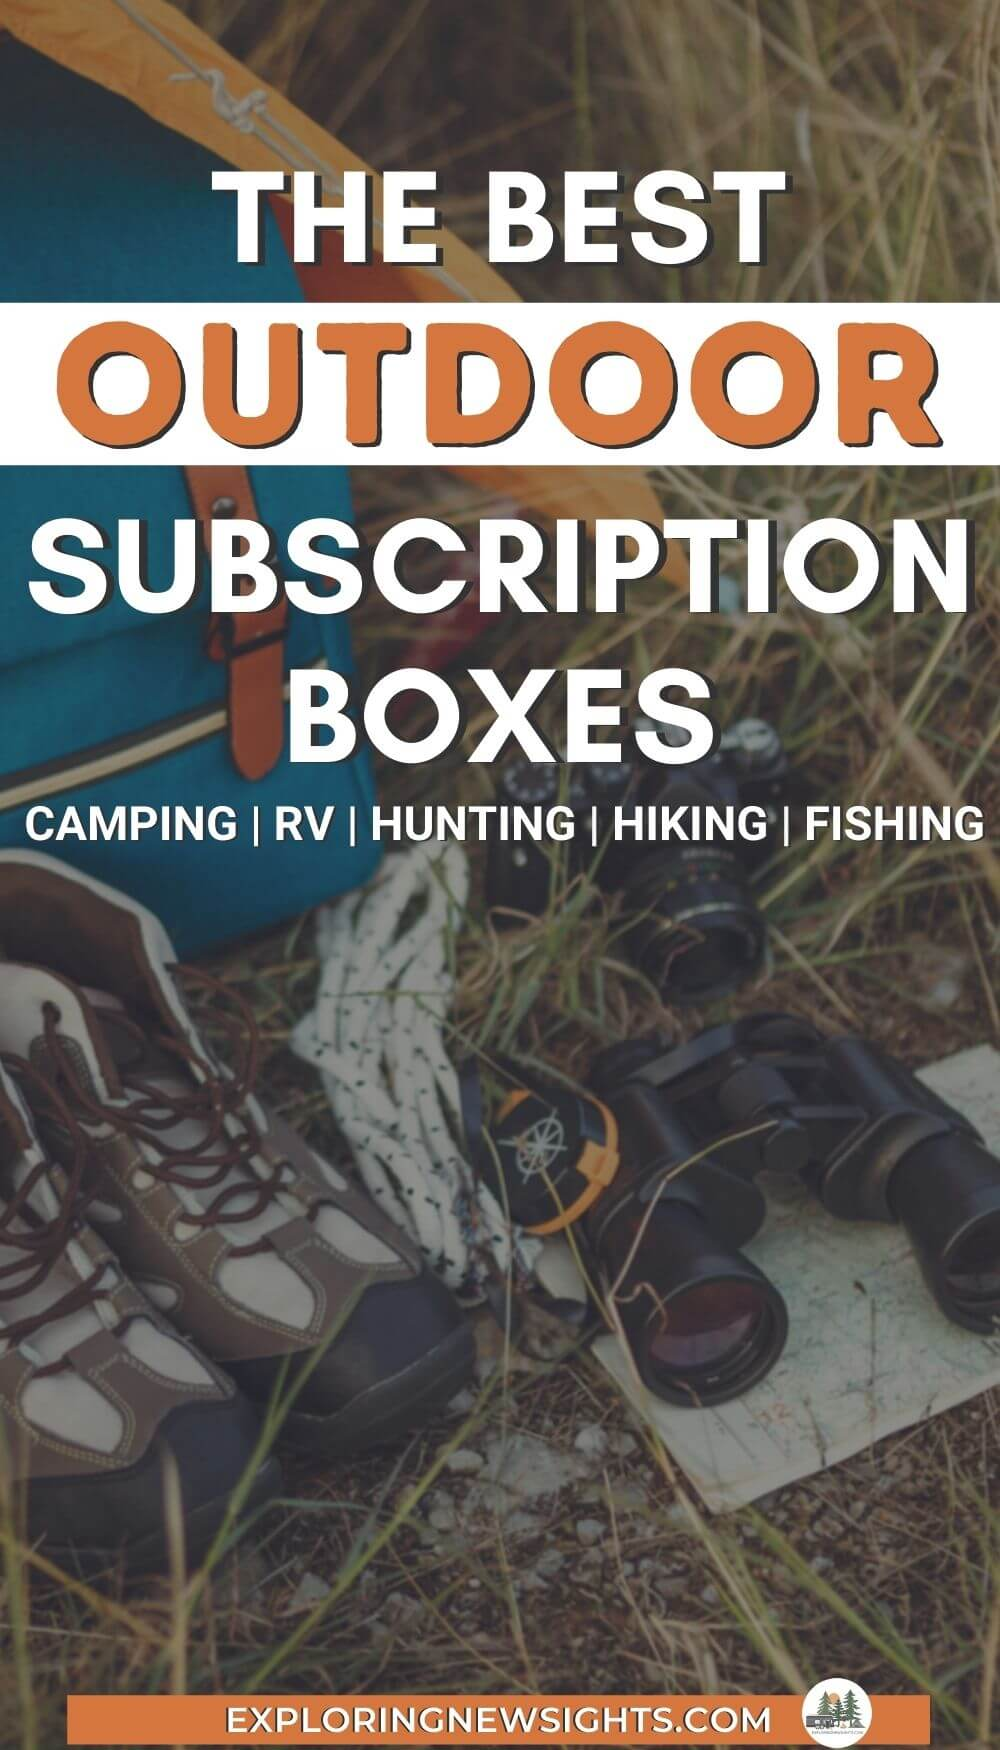 Outdoor Subscription Boxes (1)